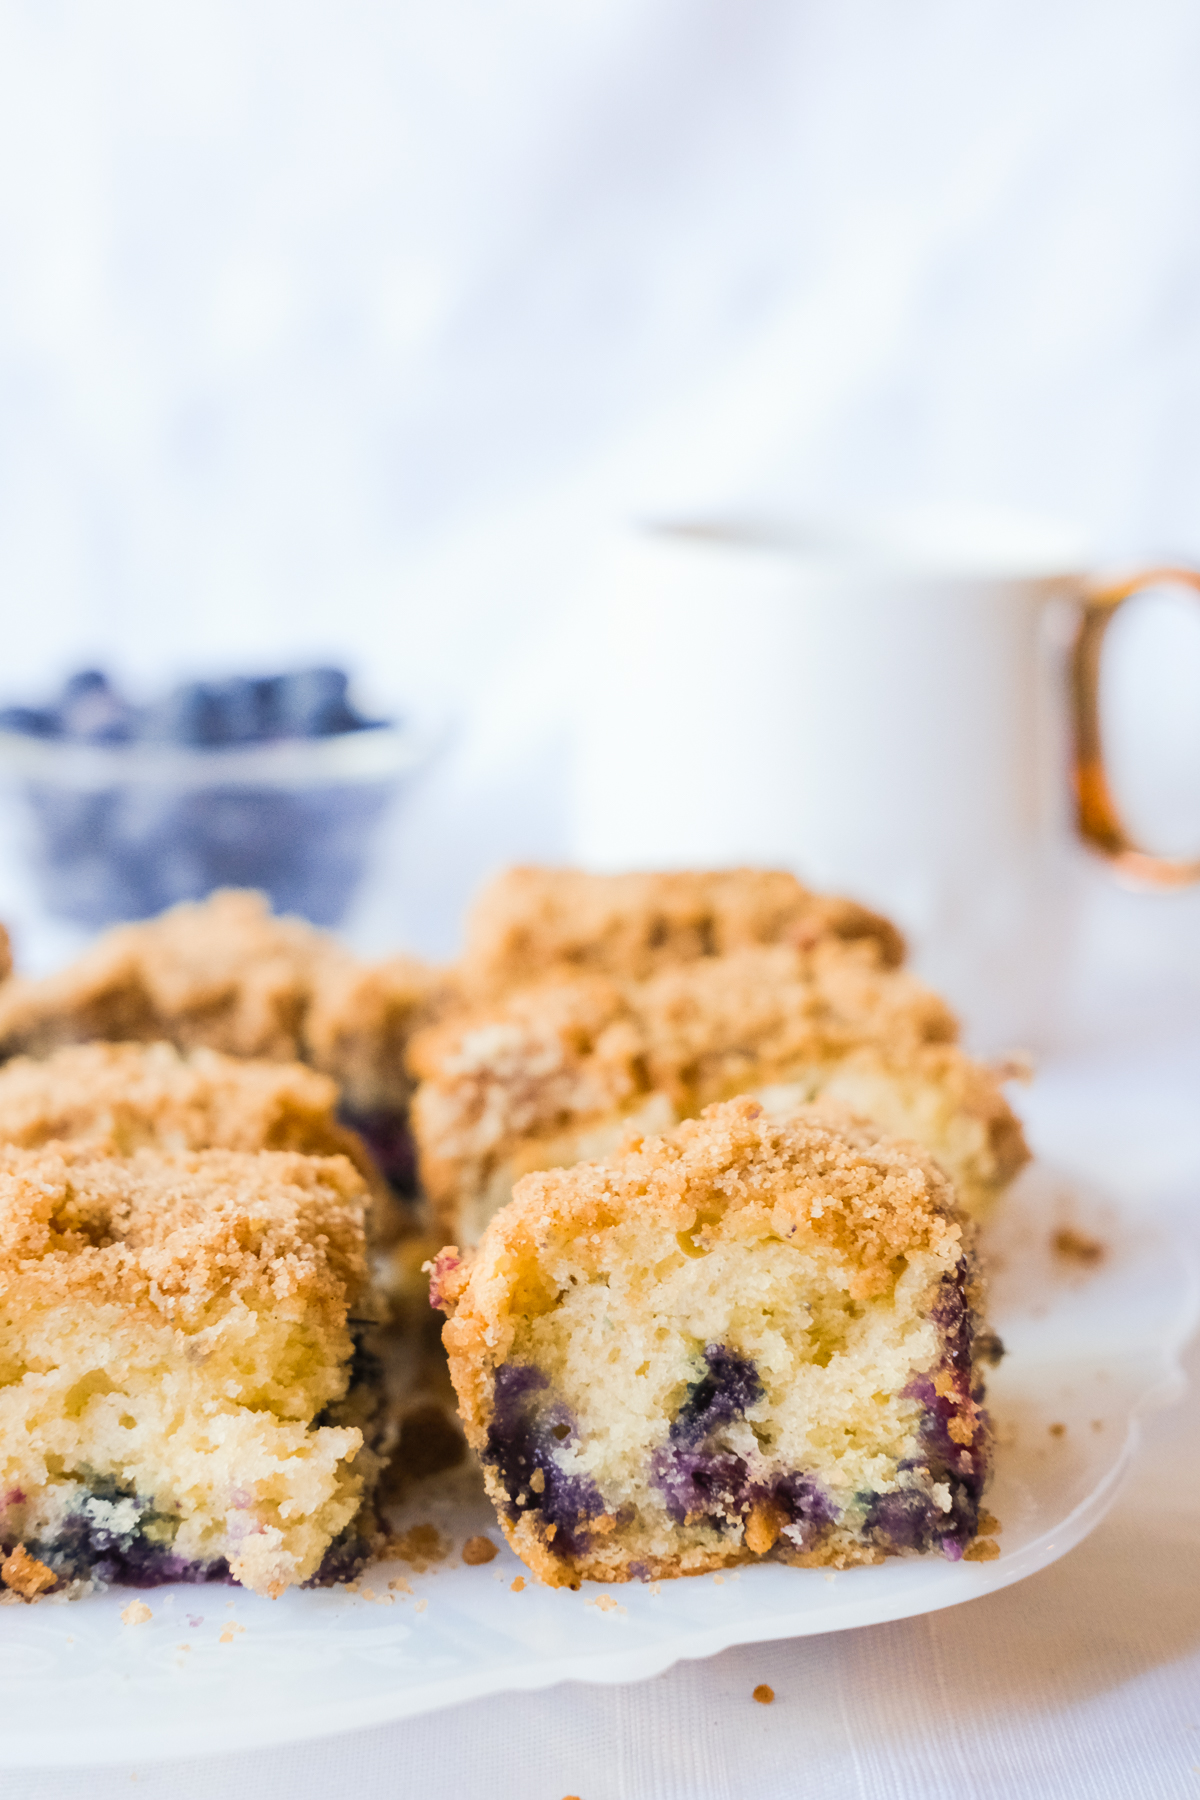 slices of blueberry coffee cake